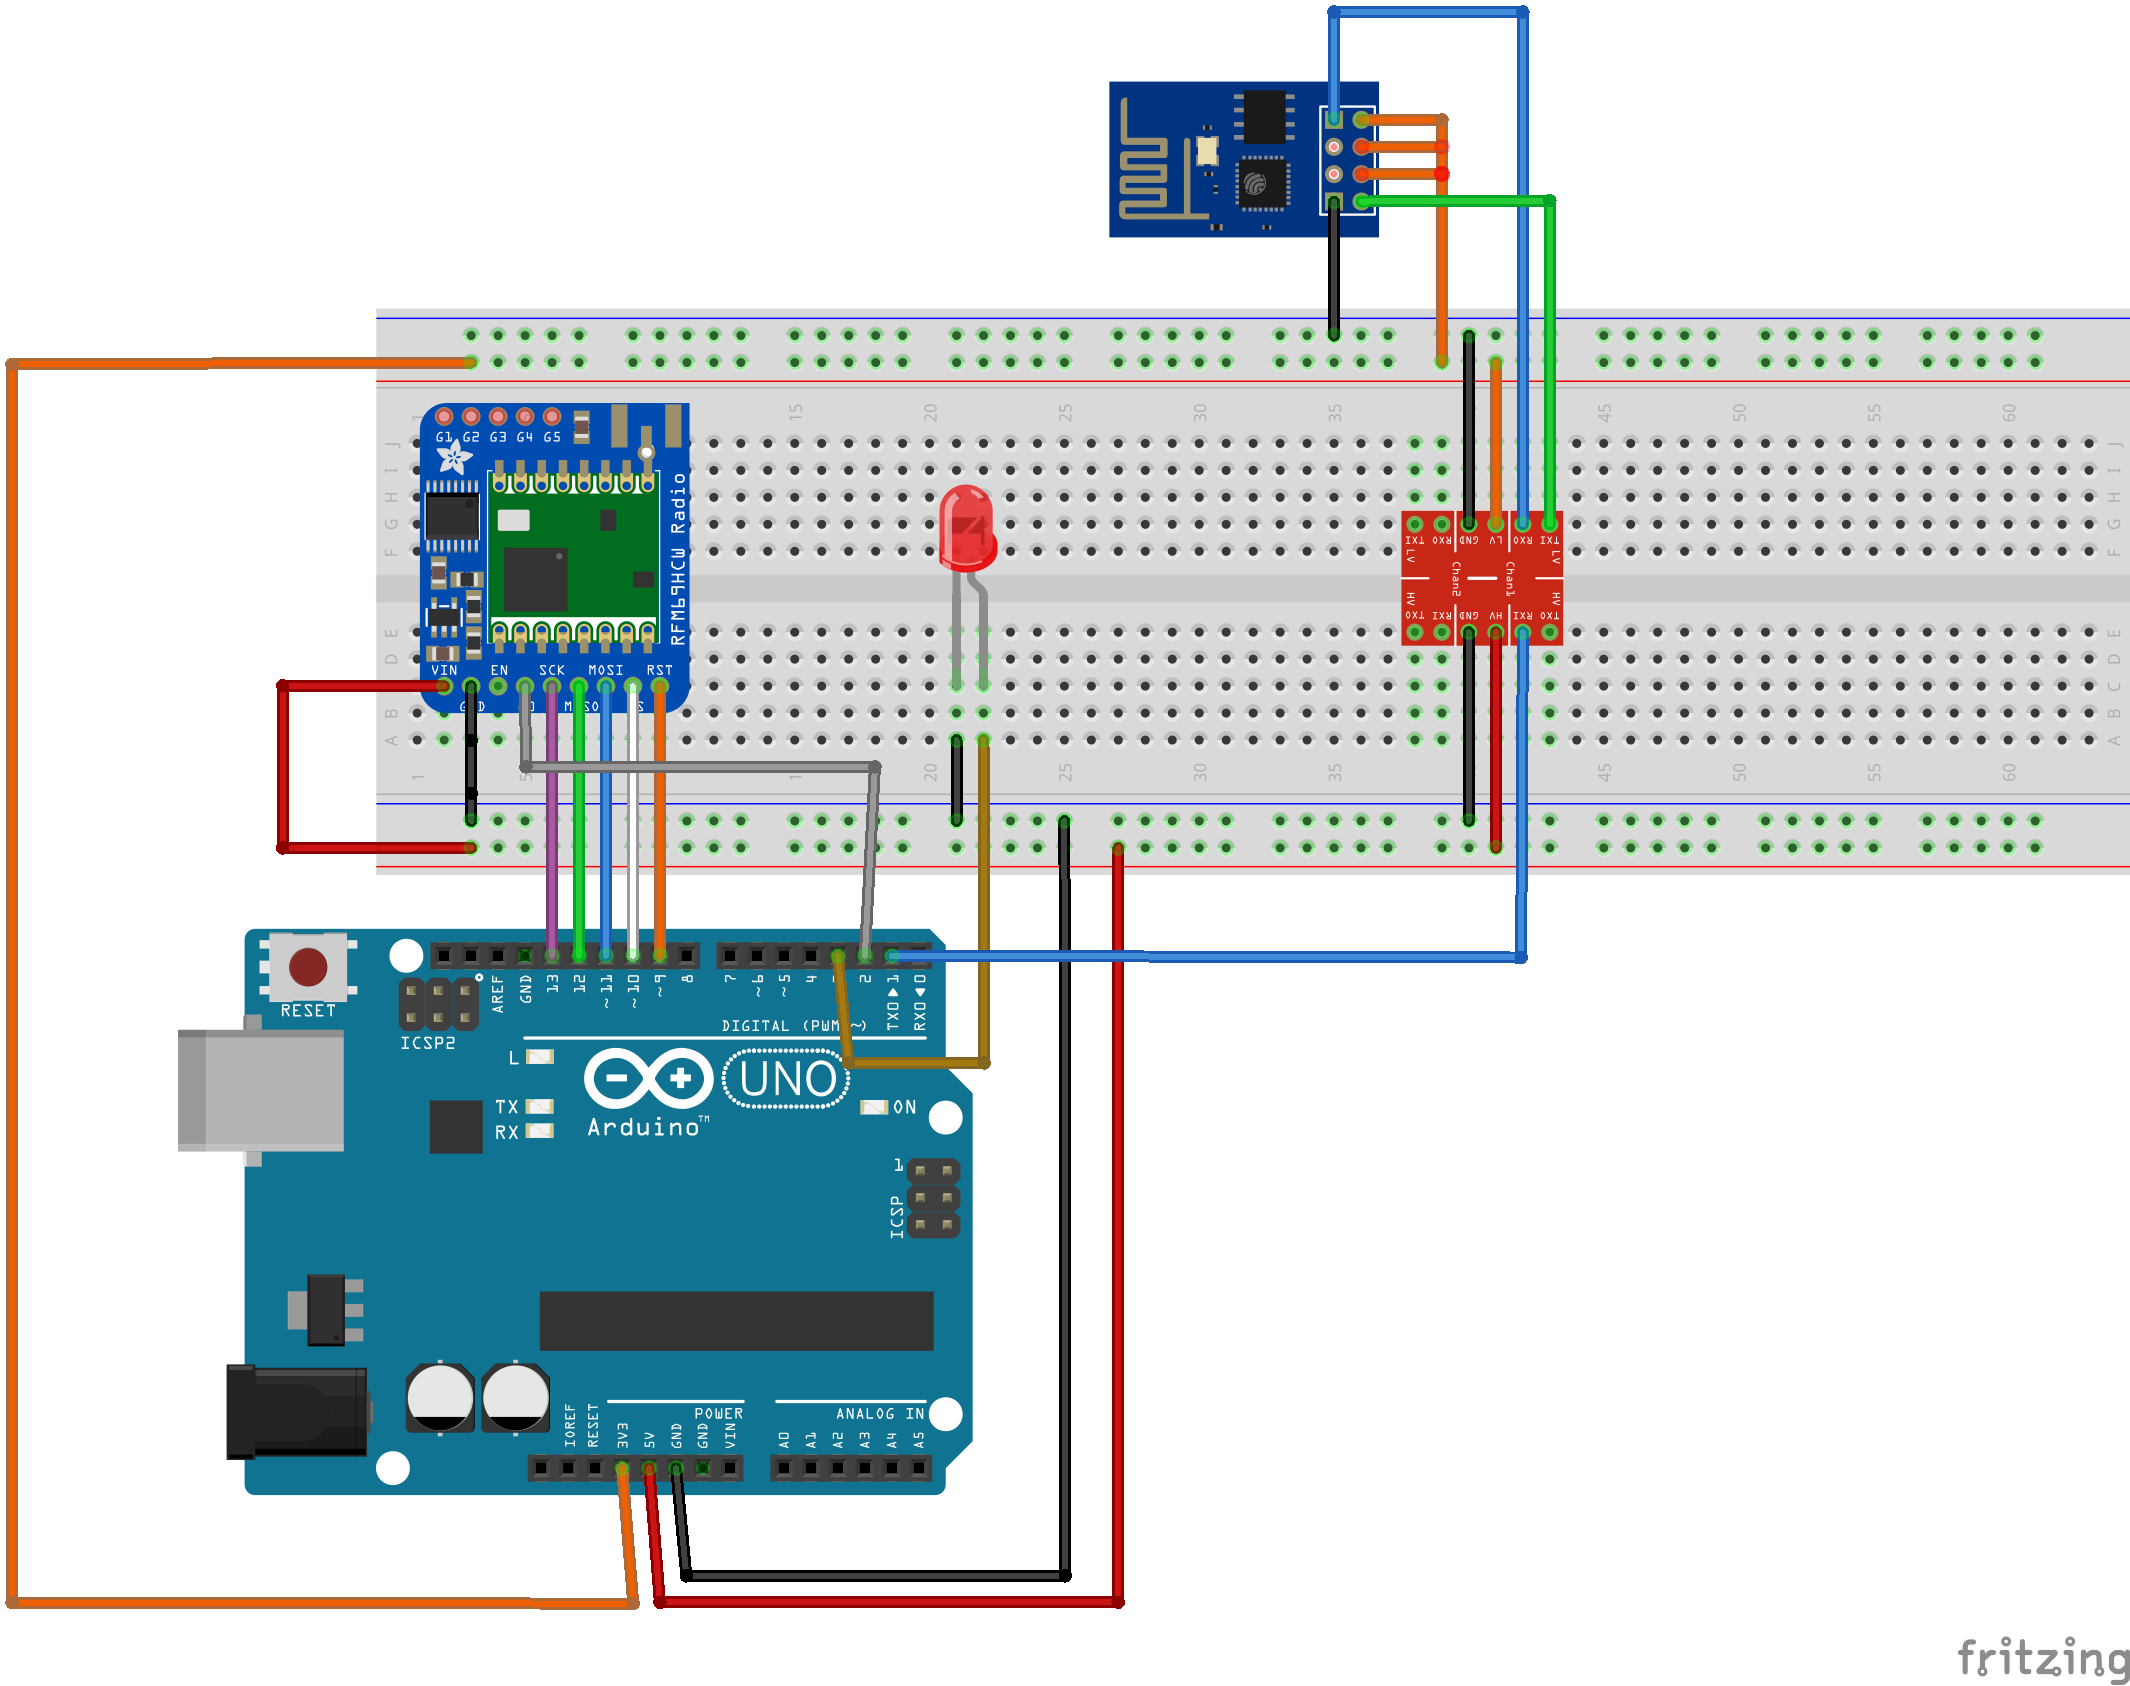 GitHub - hle92294/IPS-433mhz: An indoor positioning system